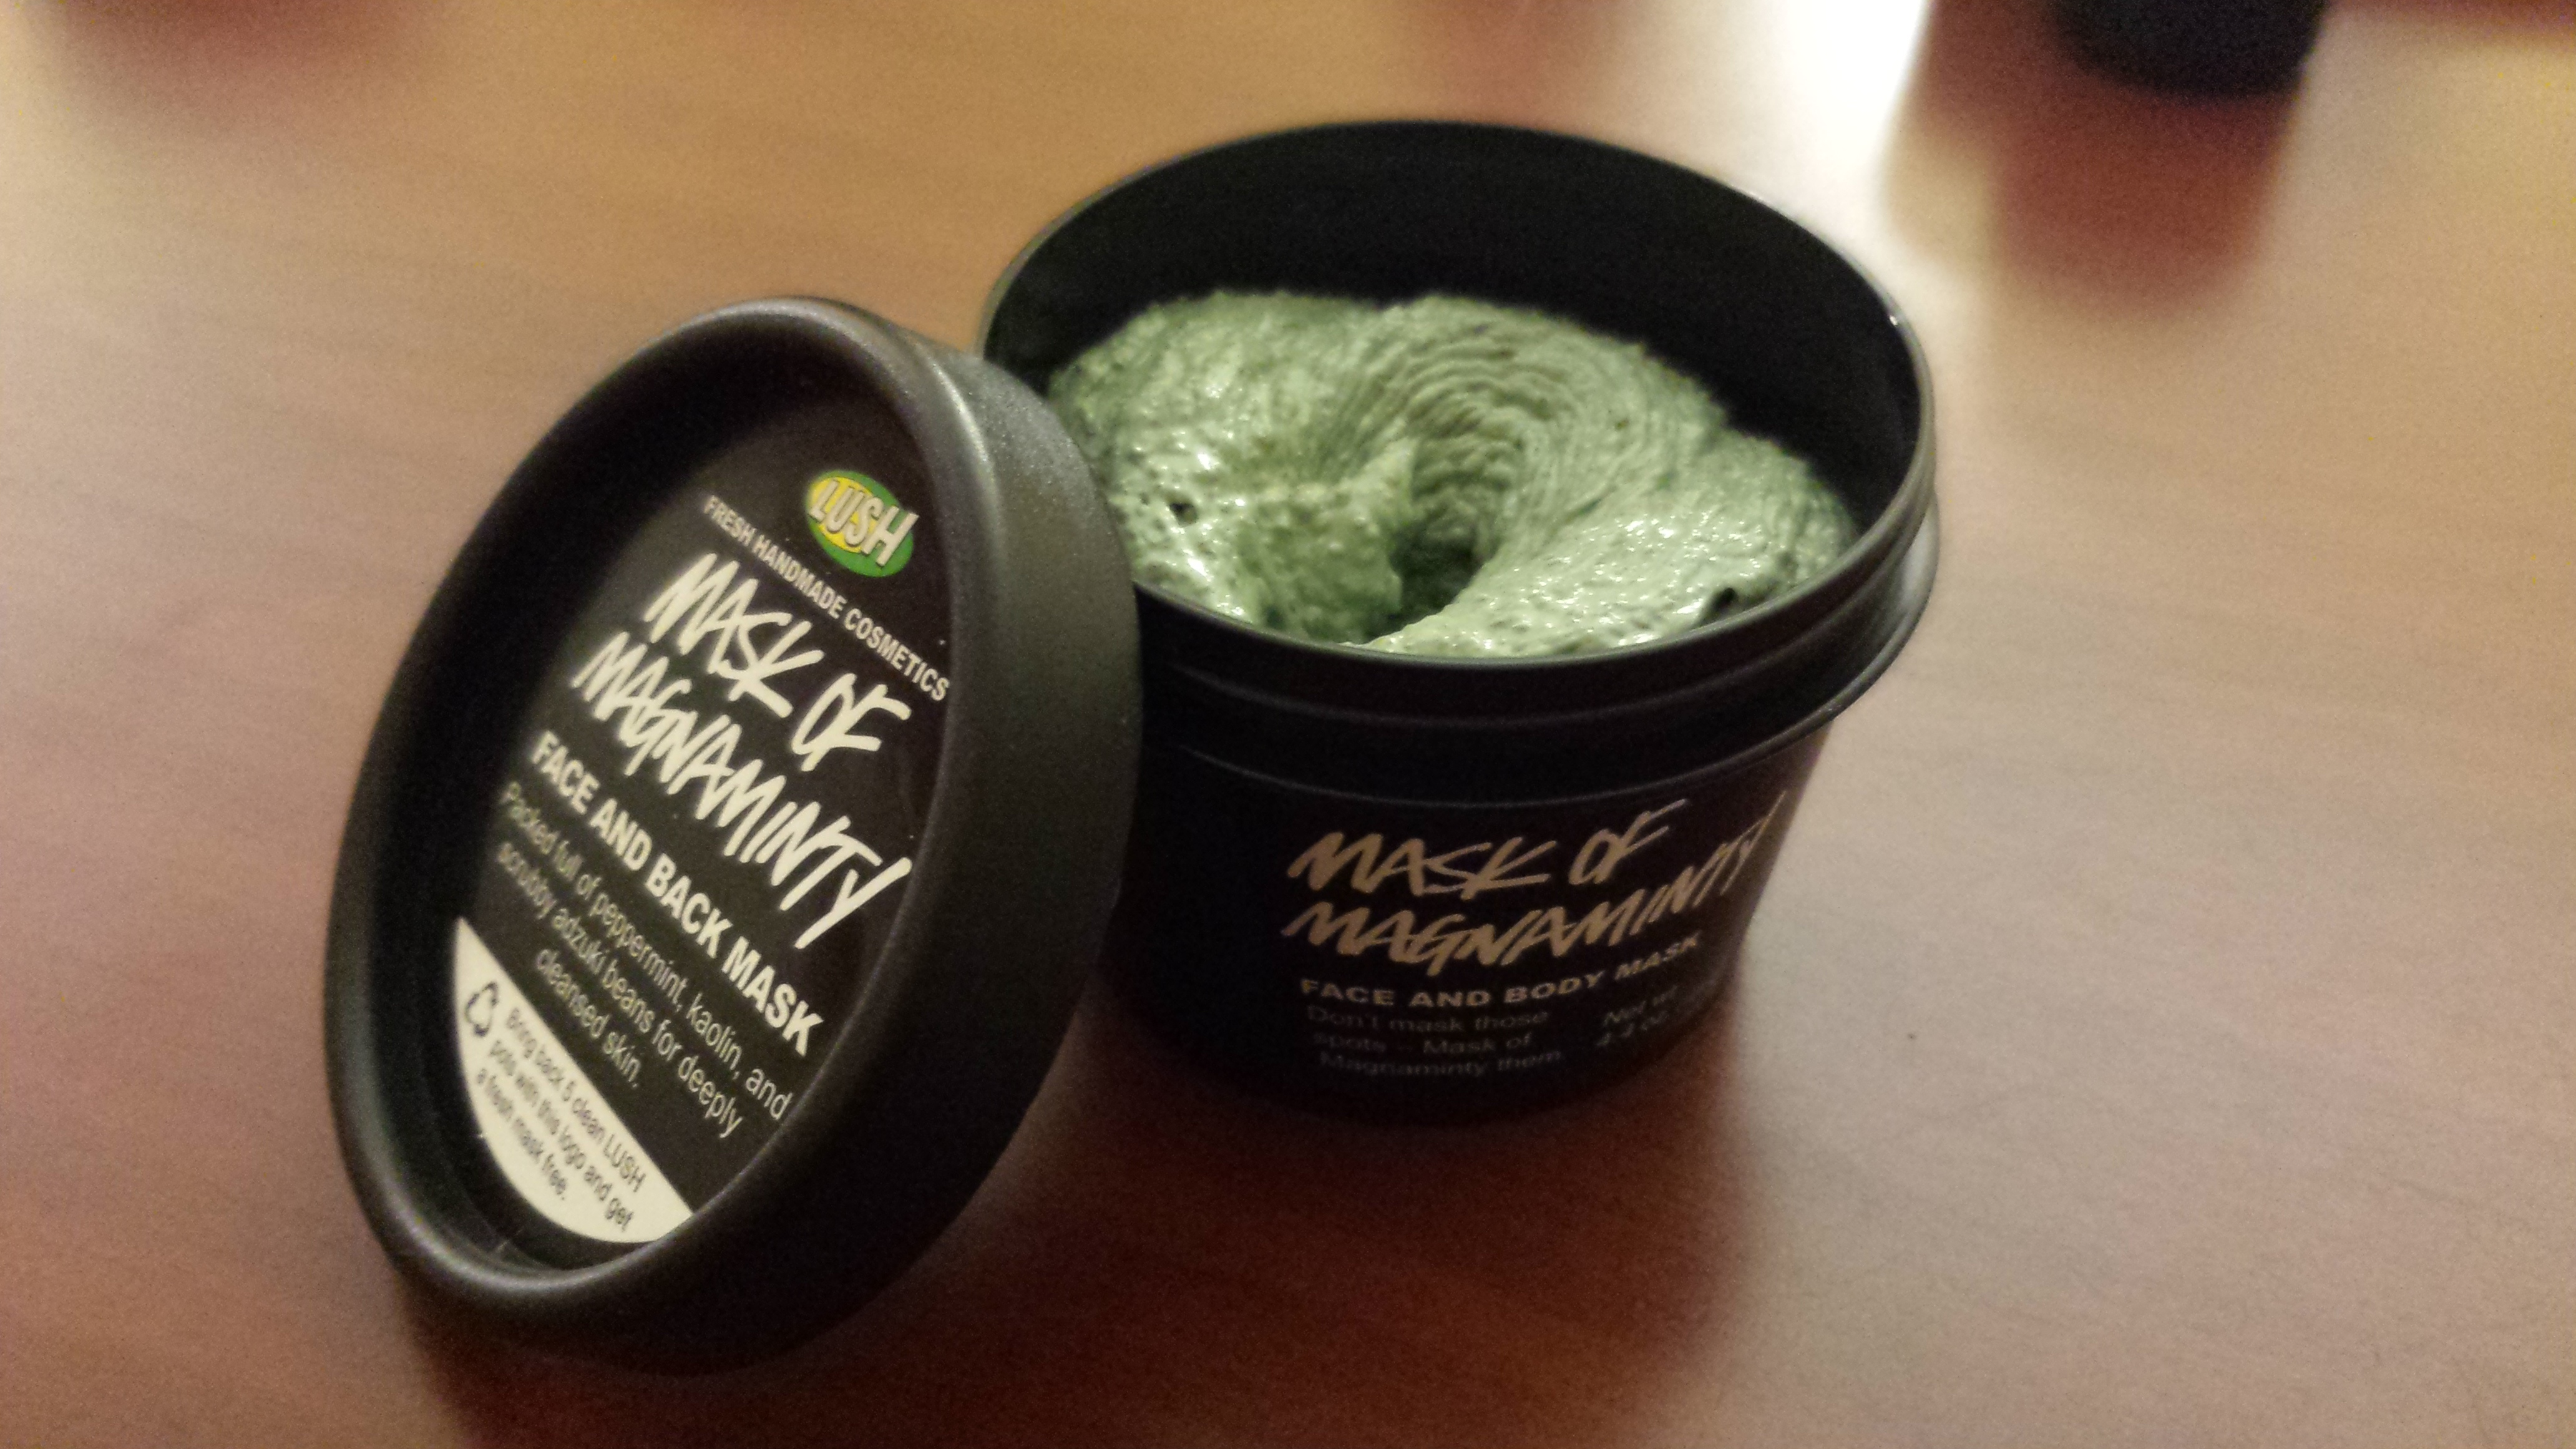 Masking the Imperfections | Joie de Jayme Masking the